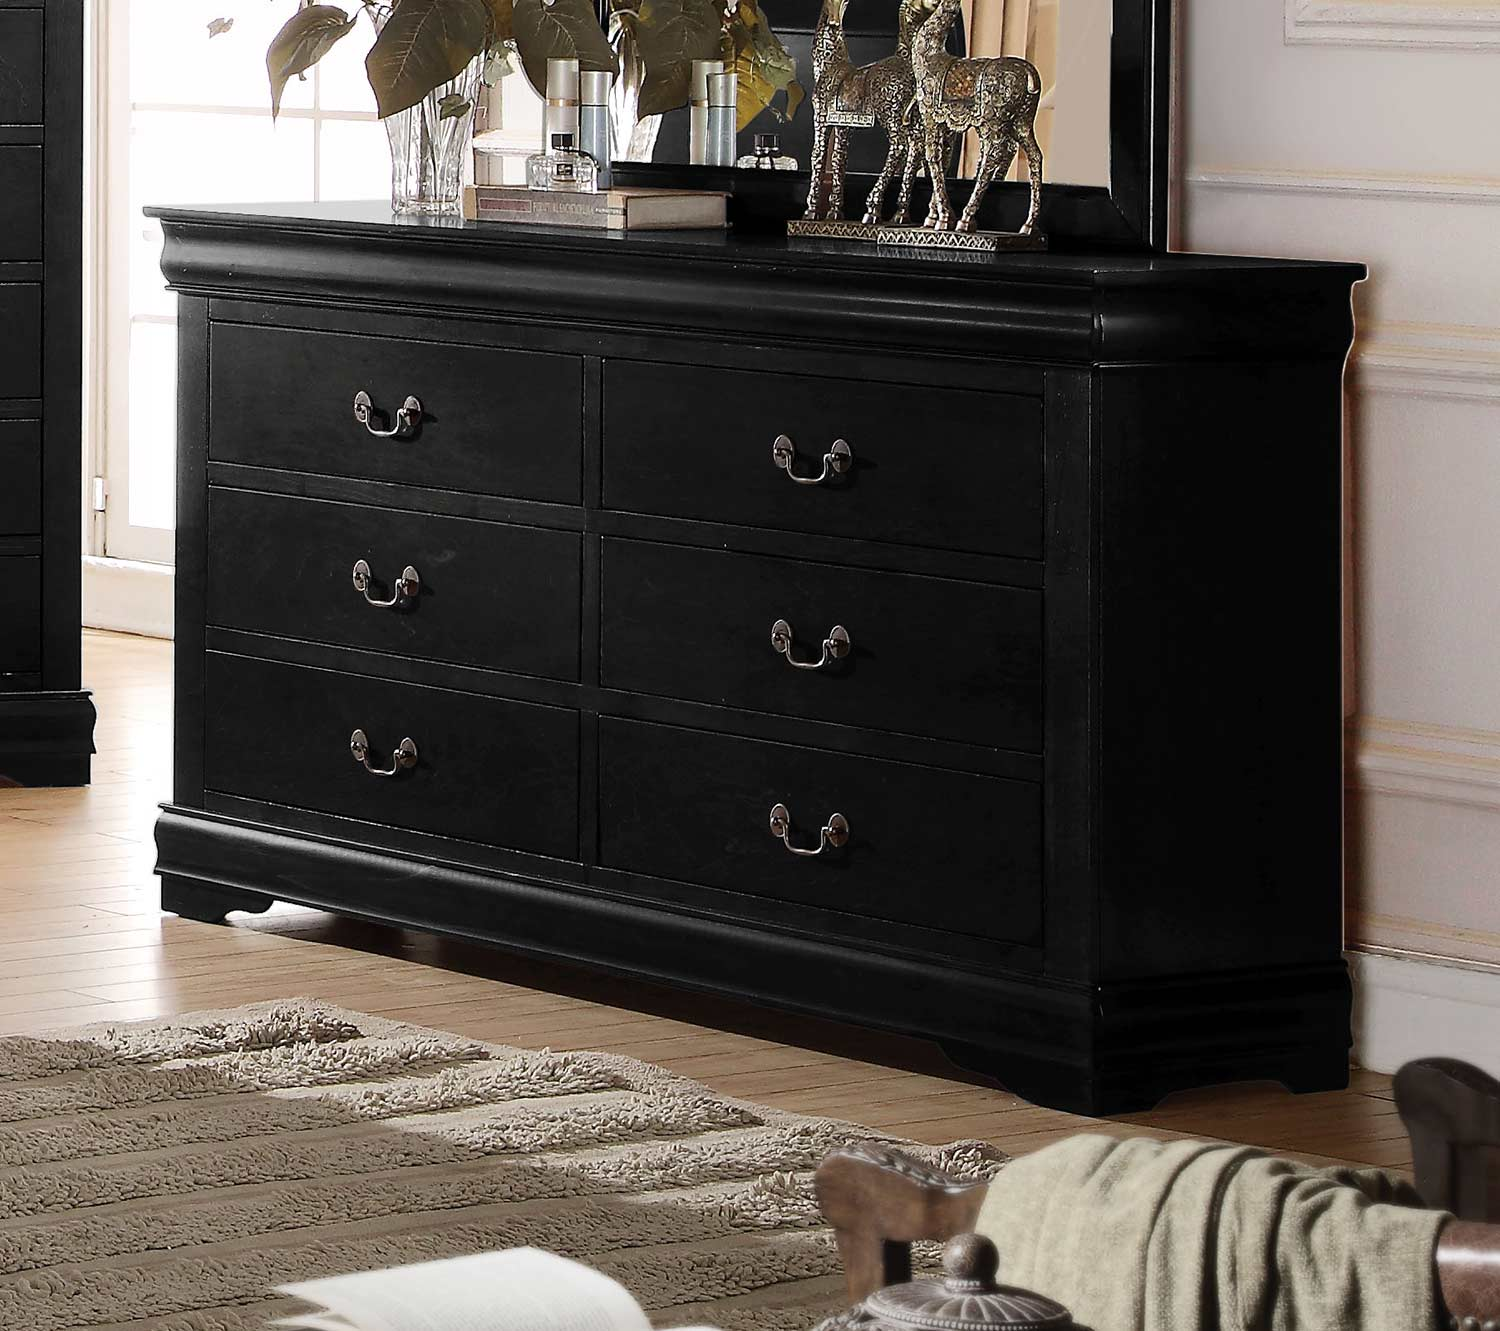 Acme Louis Philippe Dresser - Black